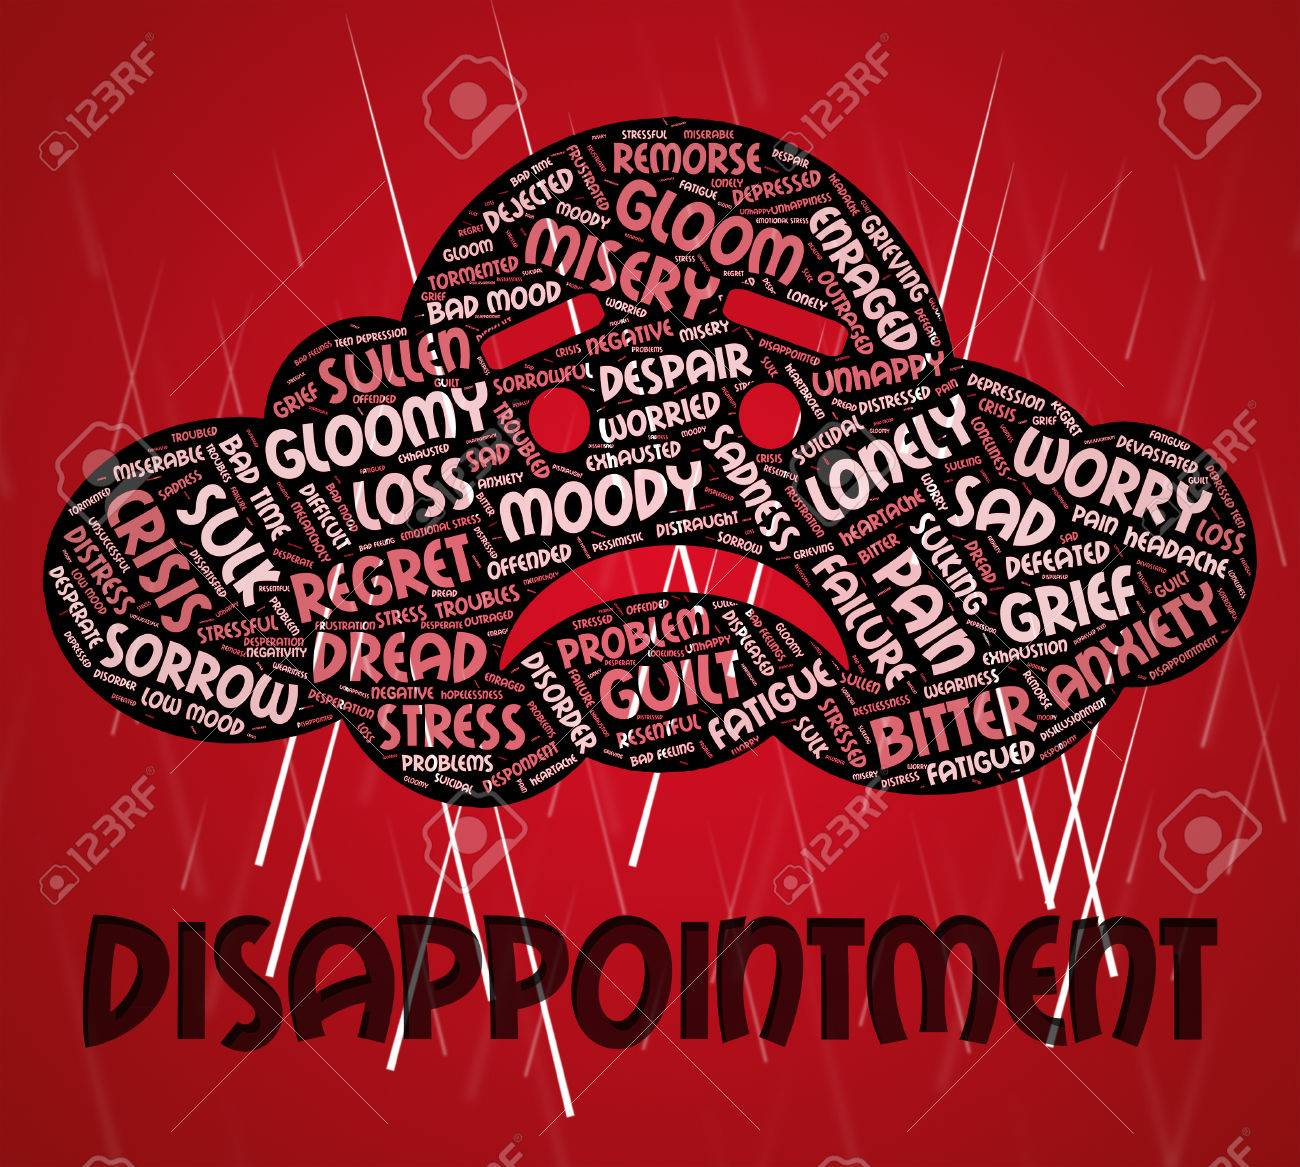 Disappointment Word Meaning Cast Down And Disillusioned